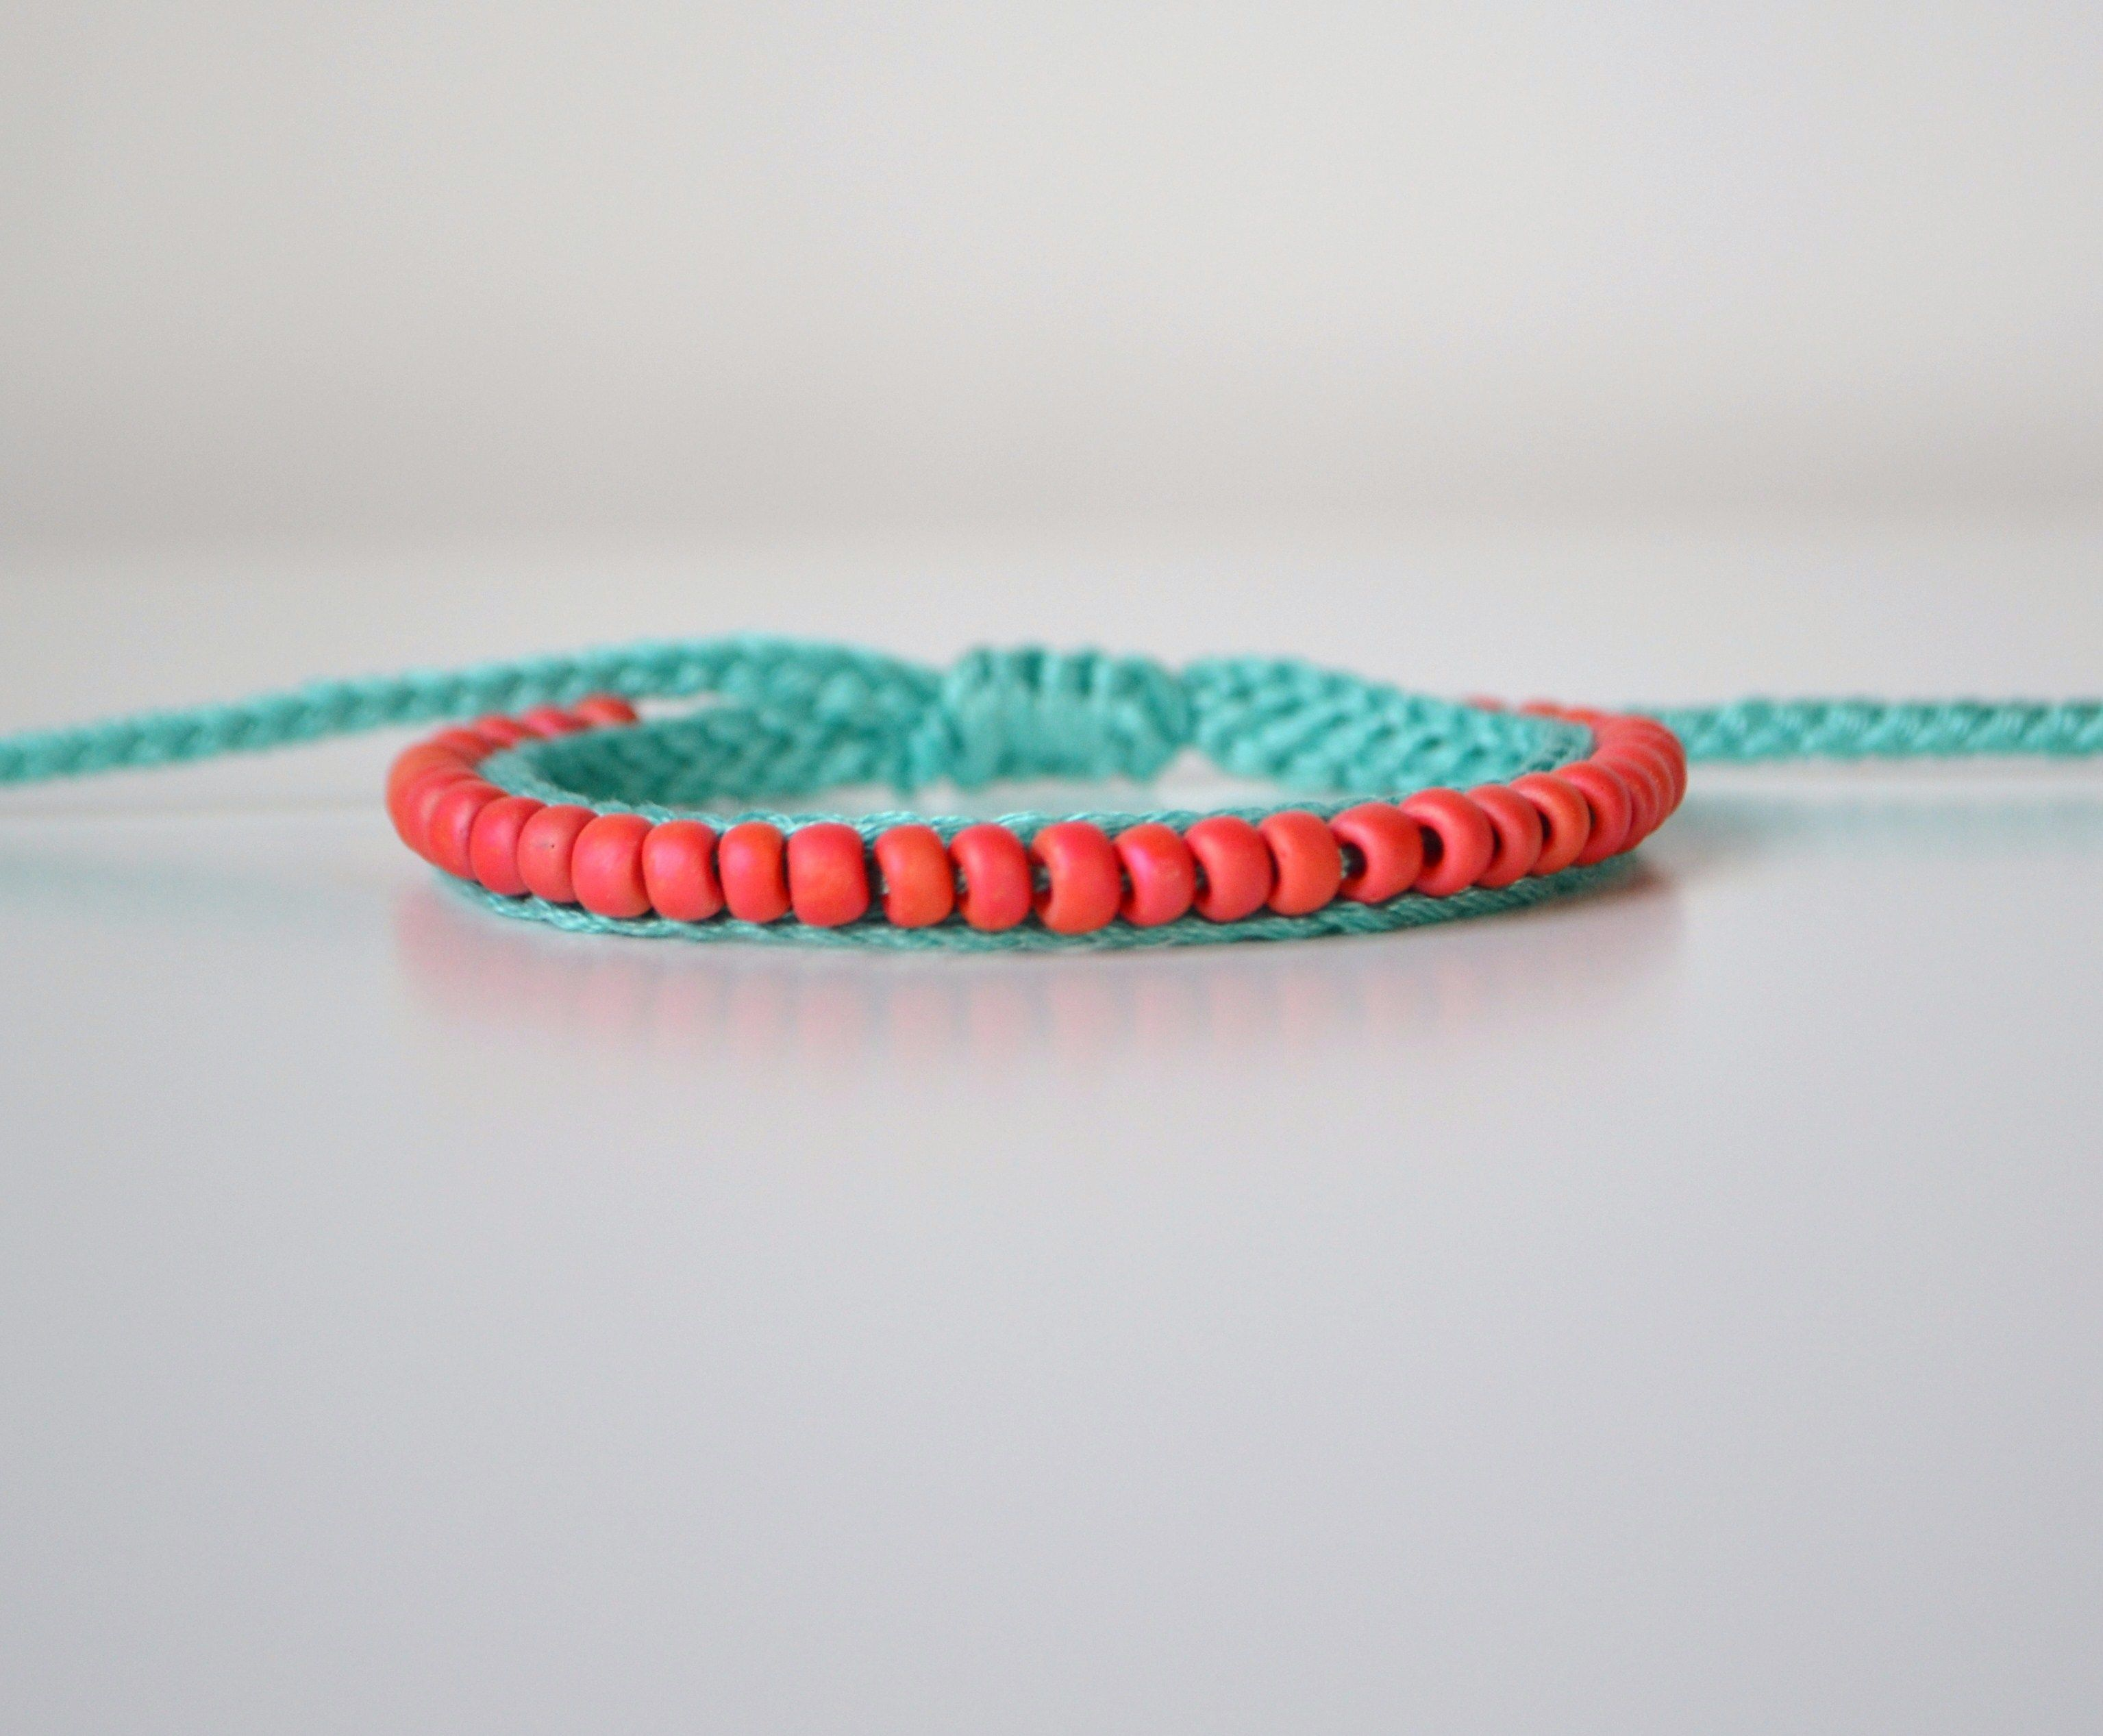 """This beaded friendship bracelet is hand crocheted with seagreen embroidery floss and coral beads. This bracelet has an adjustable knot making it """"one size fits all"""". It will fit most adult/teenage wrists, and it can be worn in a stack or alone for any occasion.    This bracelet is made to order, ..."""